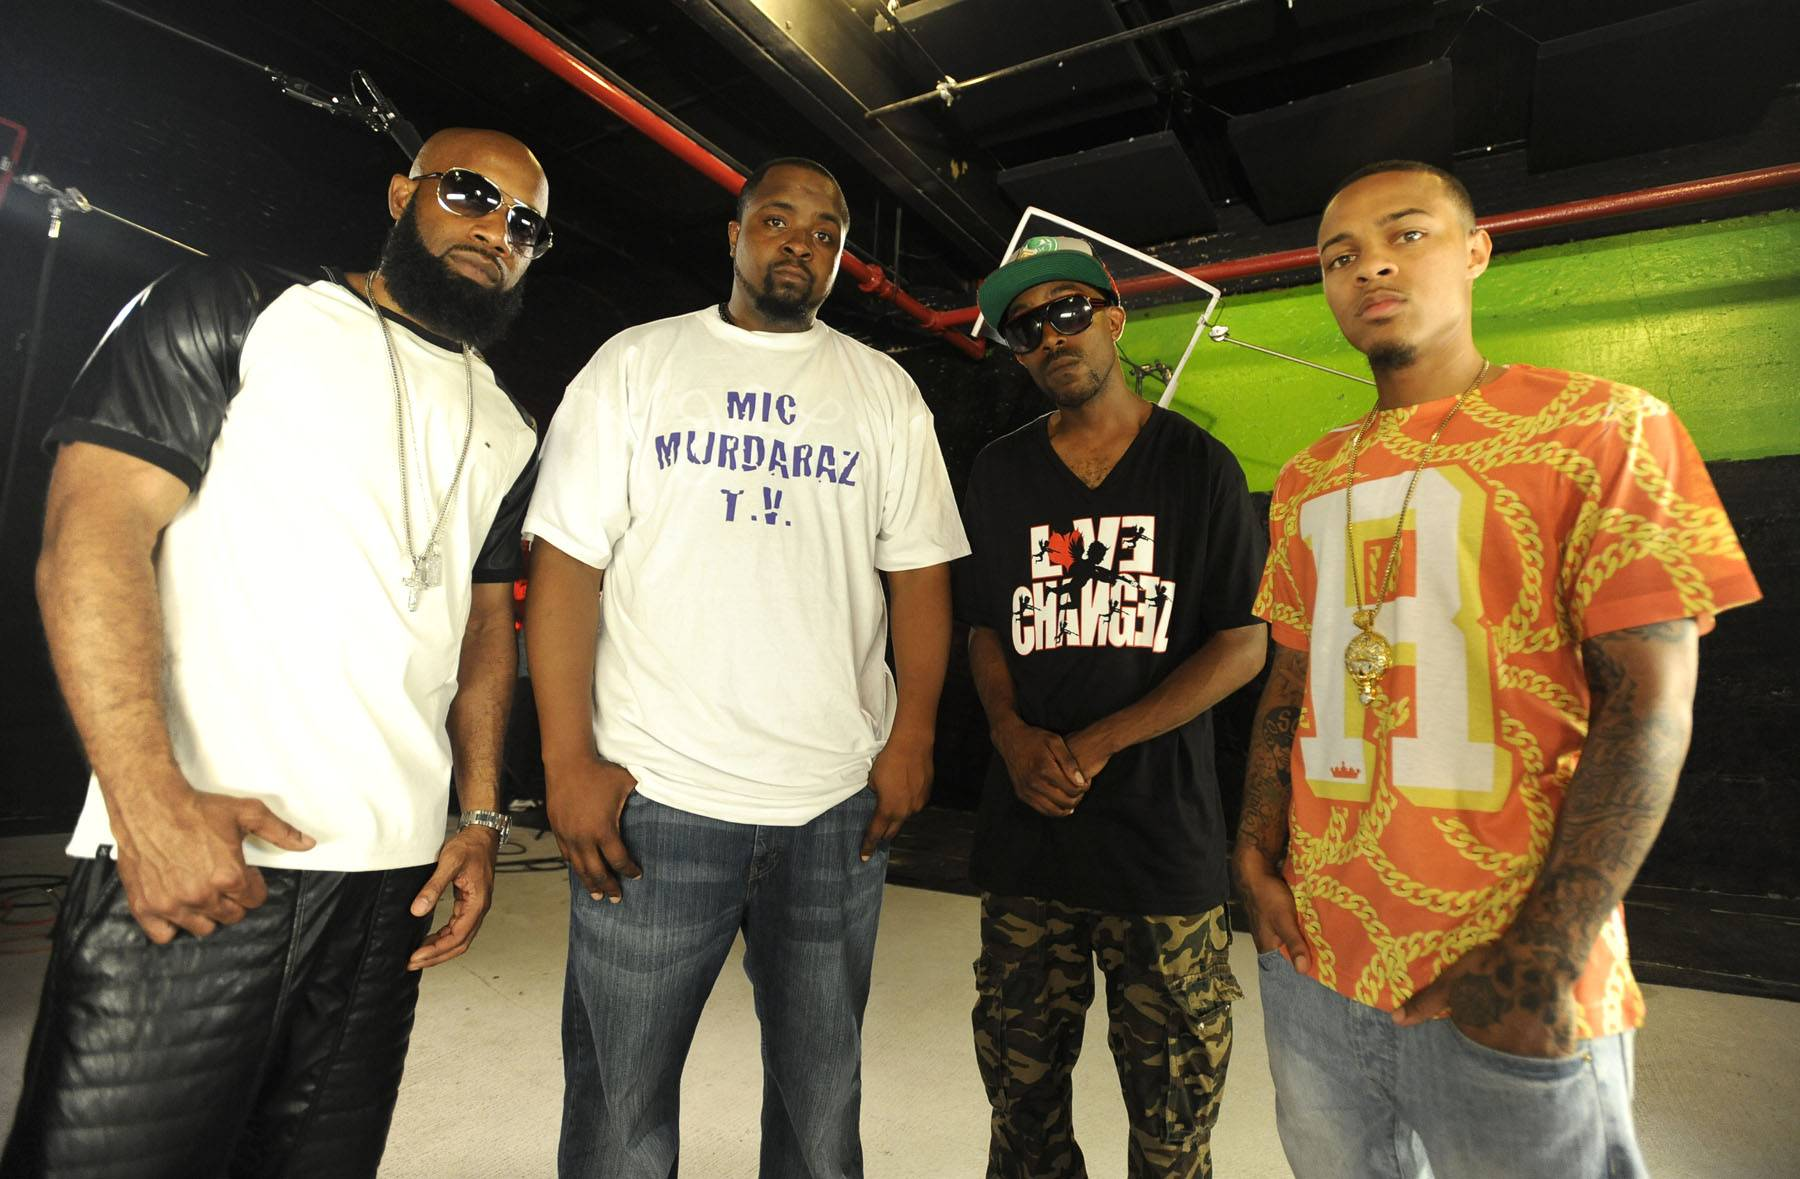 Four Amigos - Bow Wow and Smack with Ill Will and Sco at Ultimate Freestyle Friday battle on 106. (Photo: John Ricard / BET)